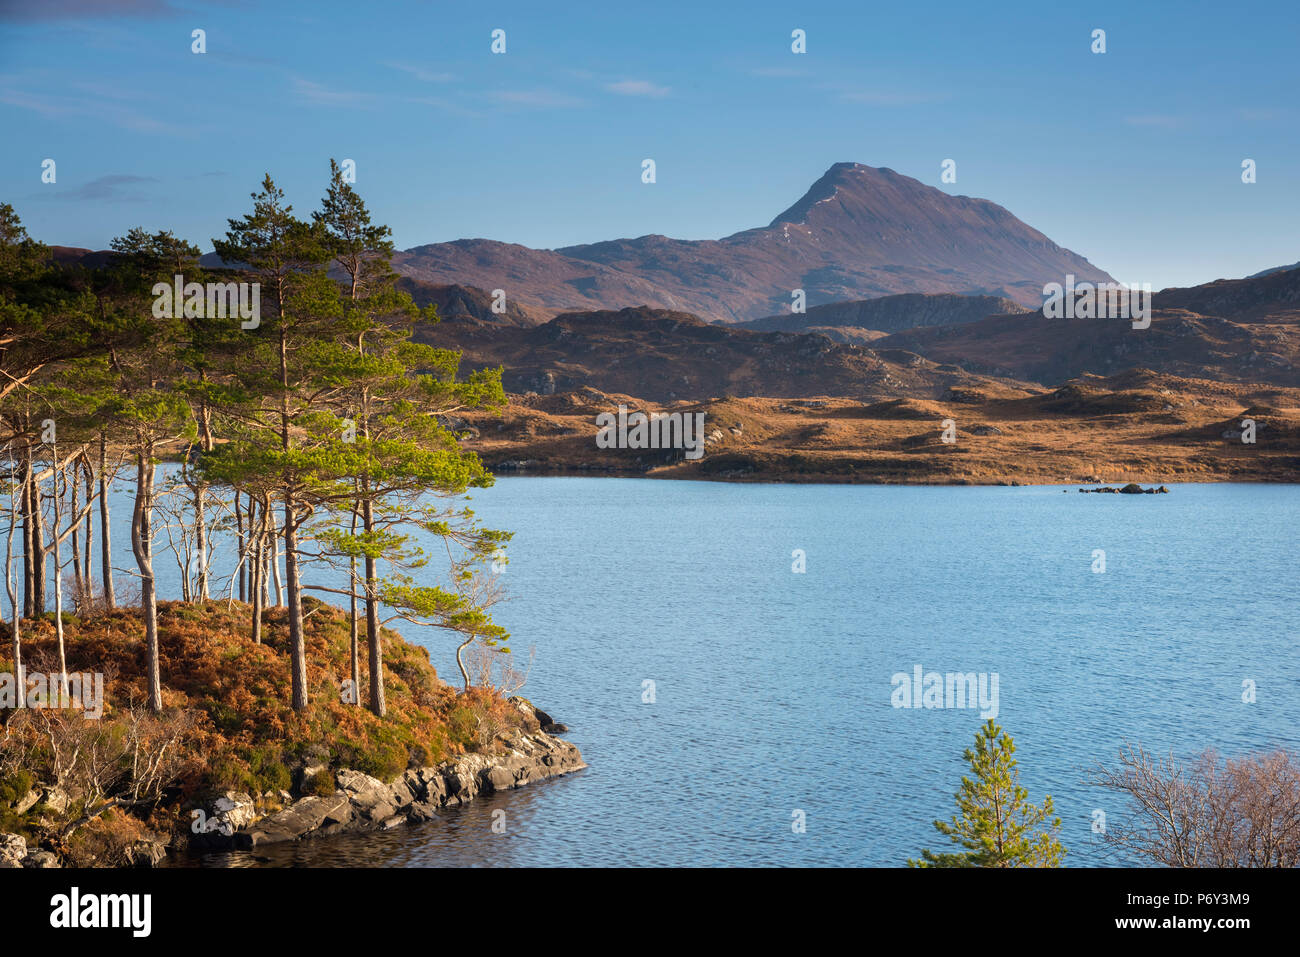 UK, Scotland, Highland, Sutherland, Lochinver, Loch Druim Suardalain, Mount Canisp Stock Photo